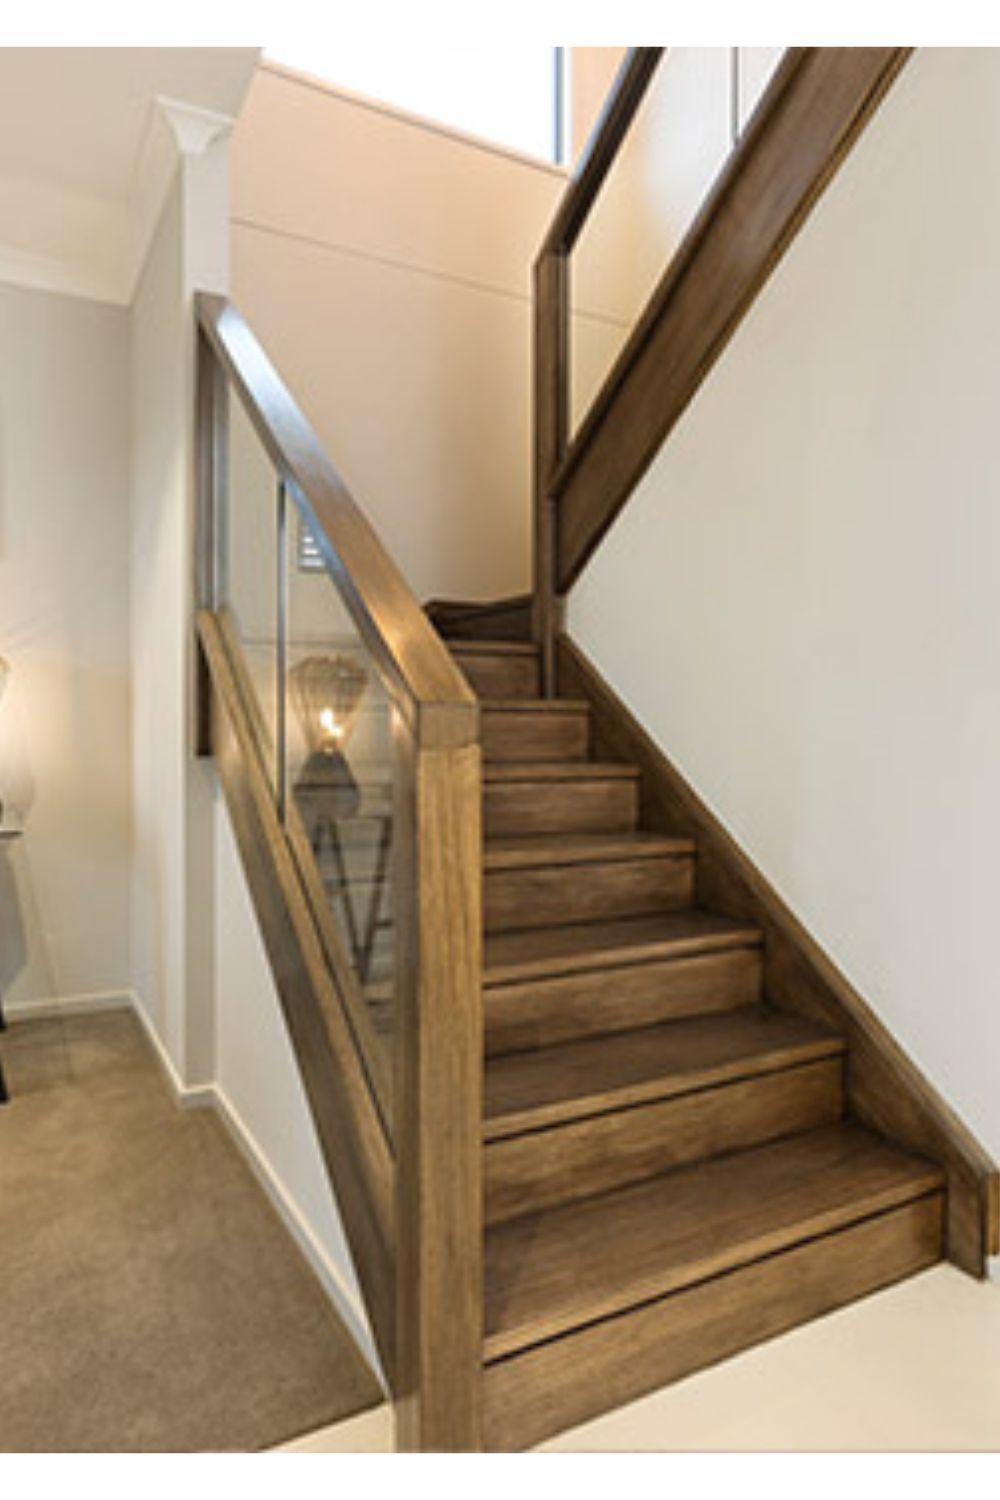 26 Ideas About Staircase Designs Modern About Home Decor 135 Modernliving Diy Stairs Homedecor Spiralstairs H Straight Stairs Stairs Design Modern Stairs